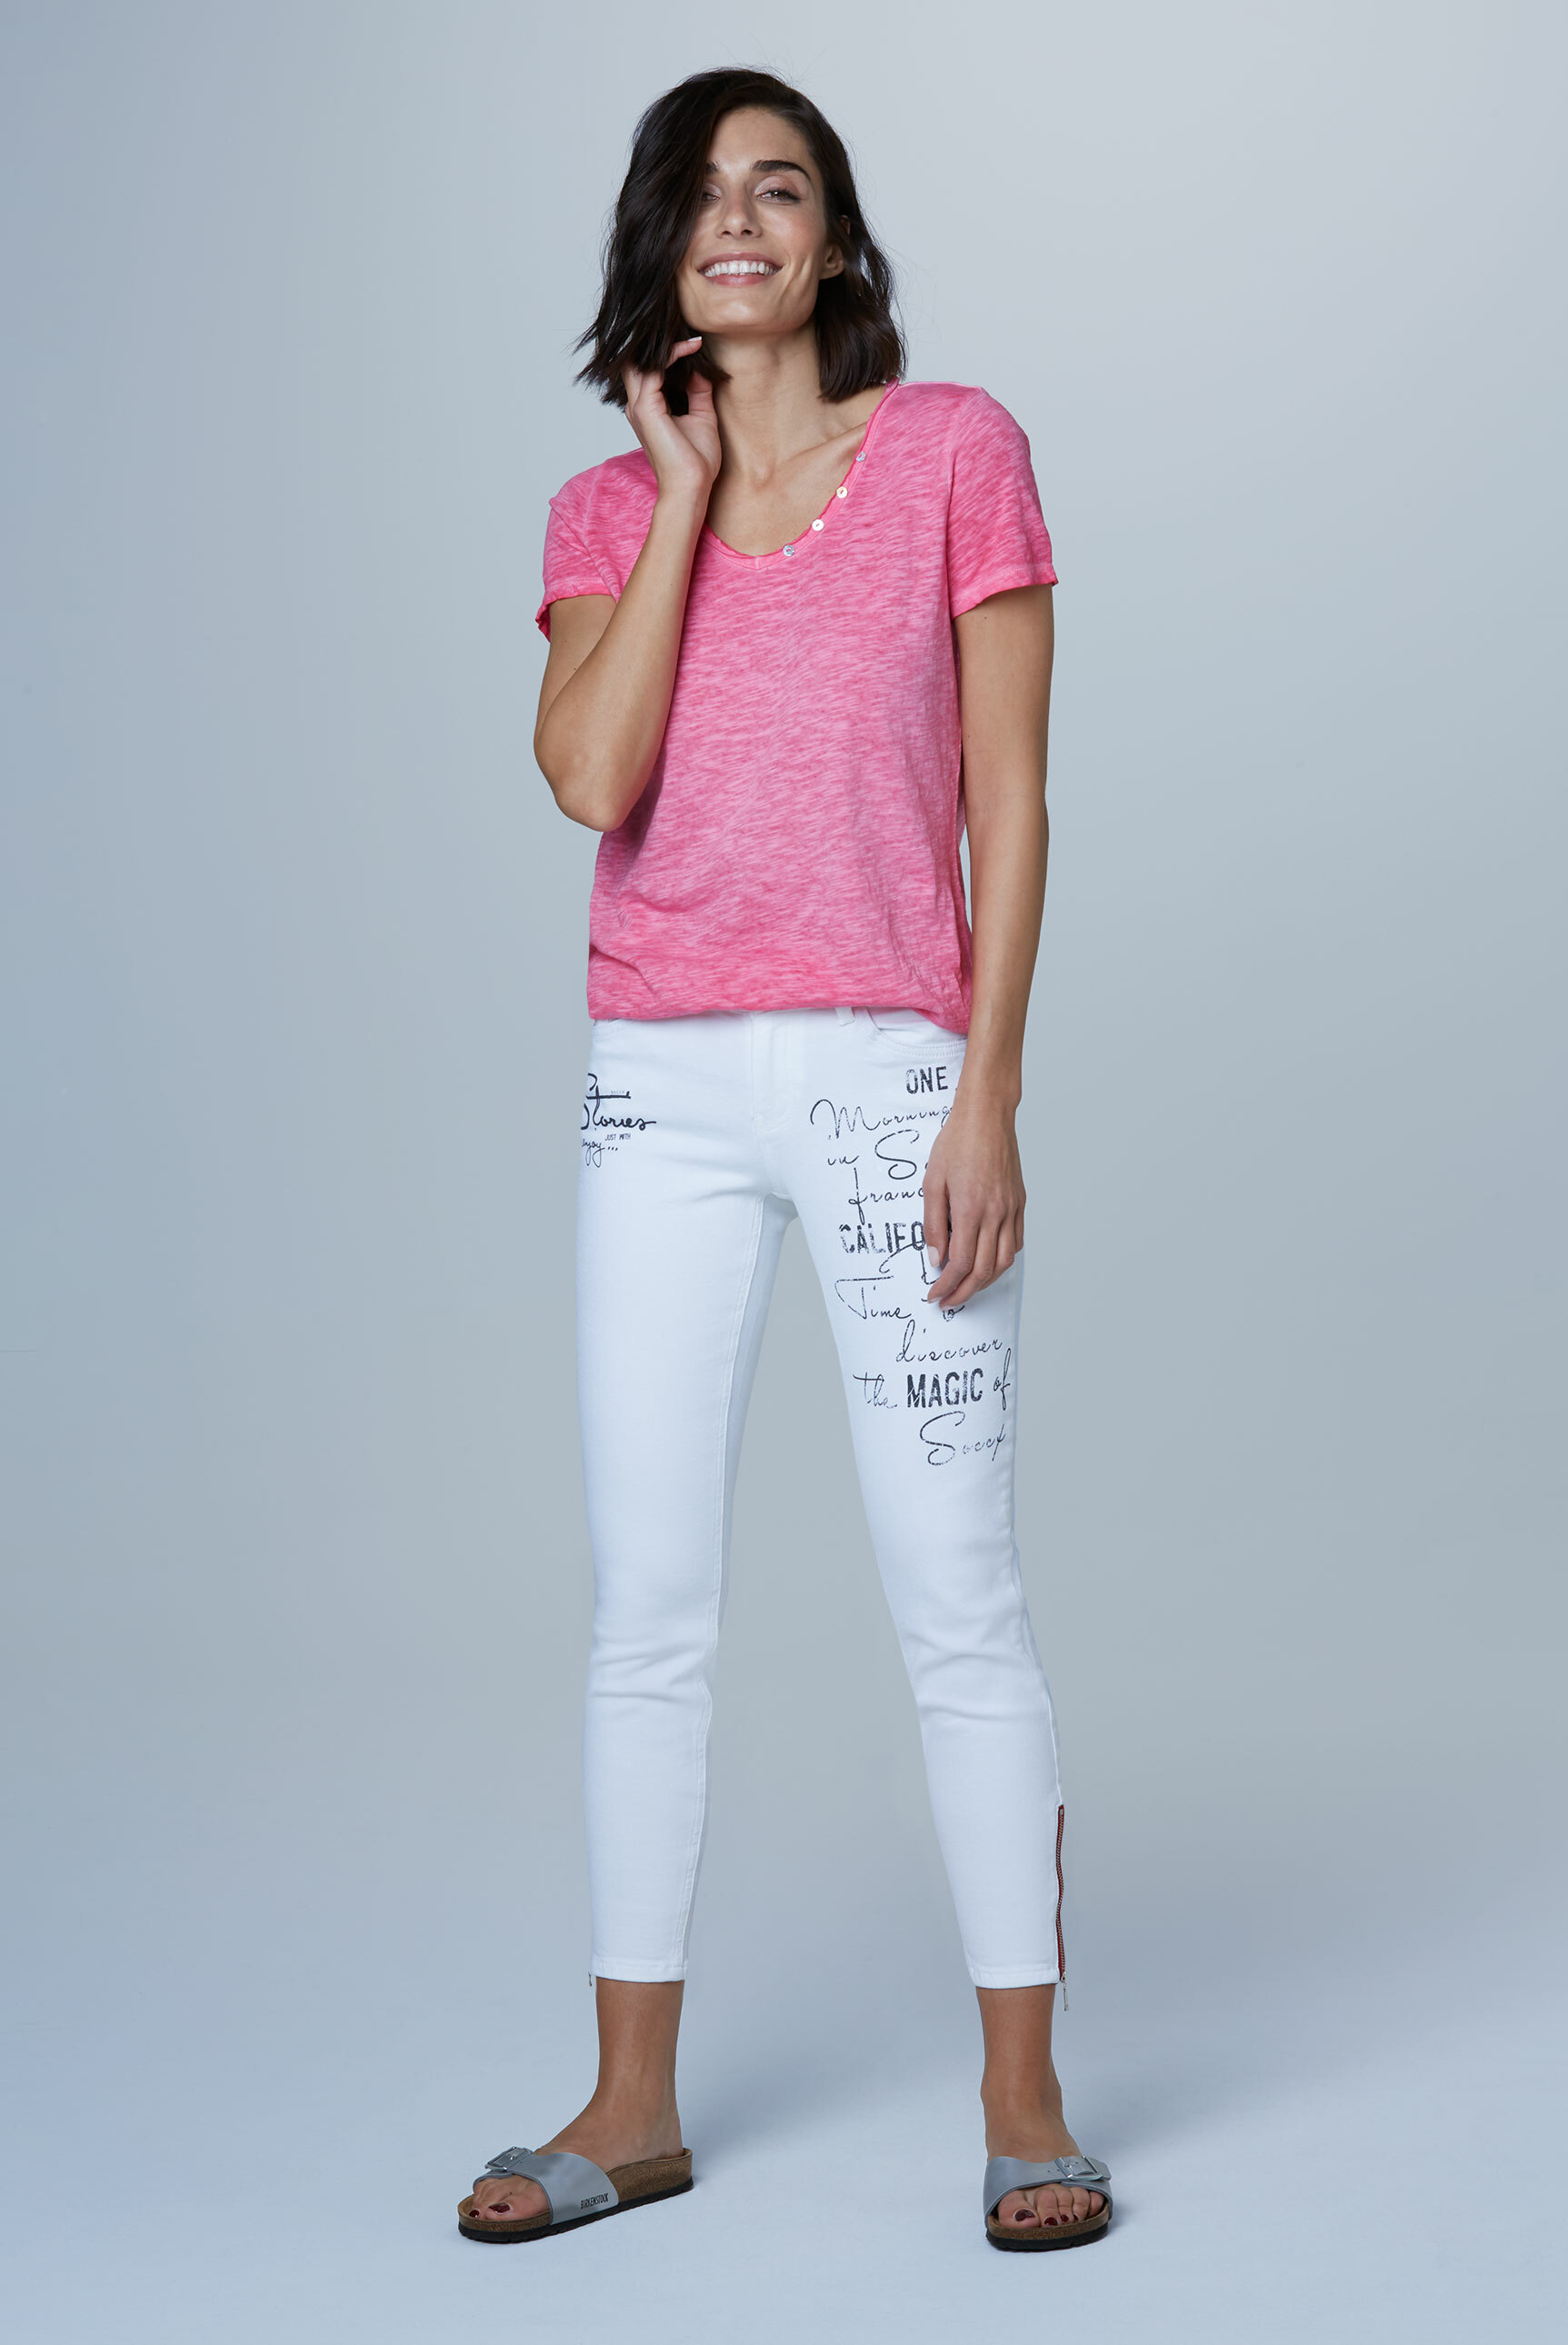 Jeans MI:RA mit Label Prints